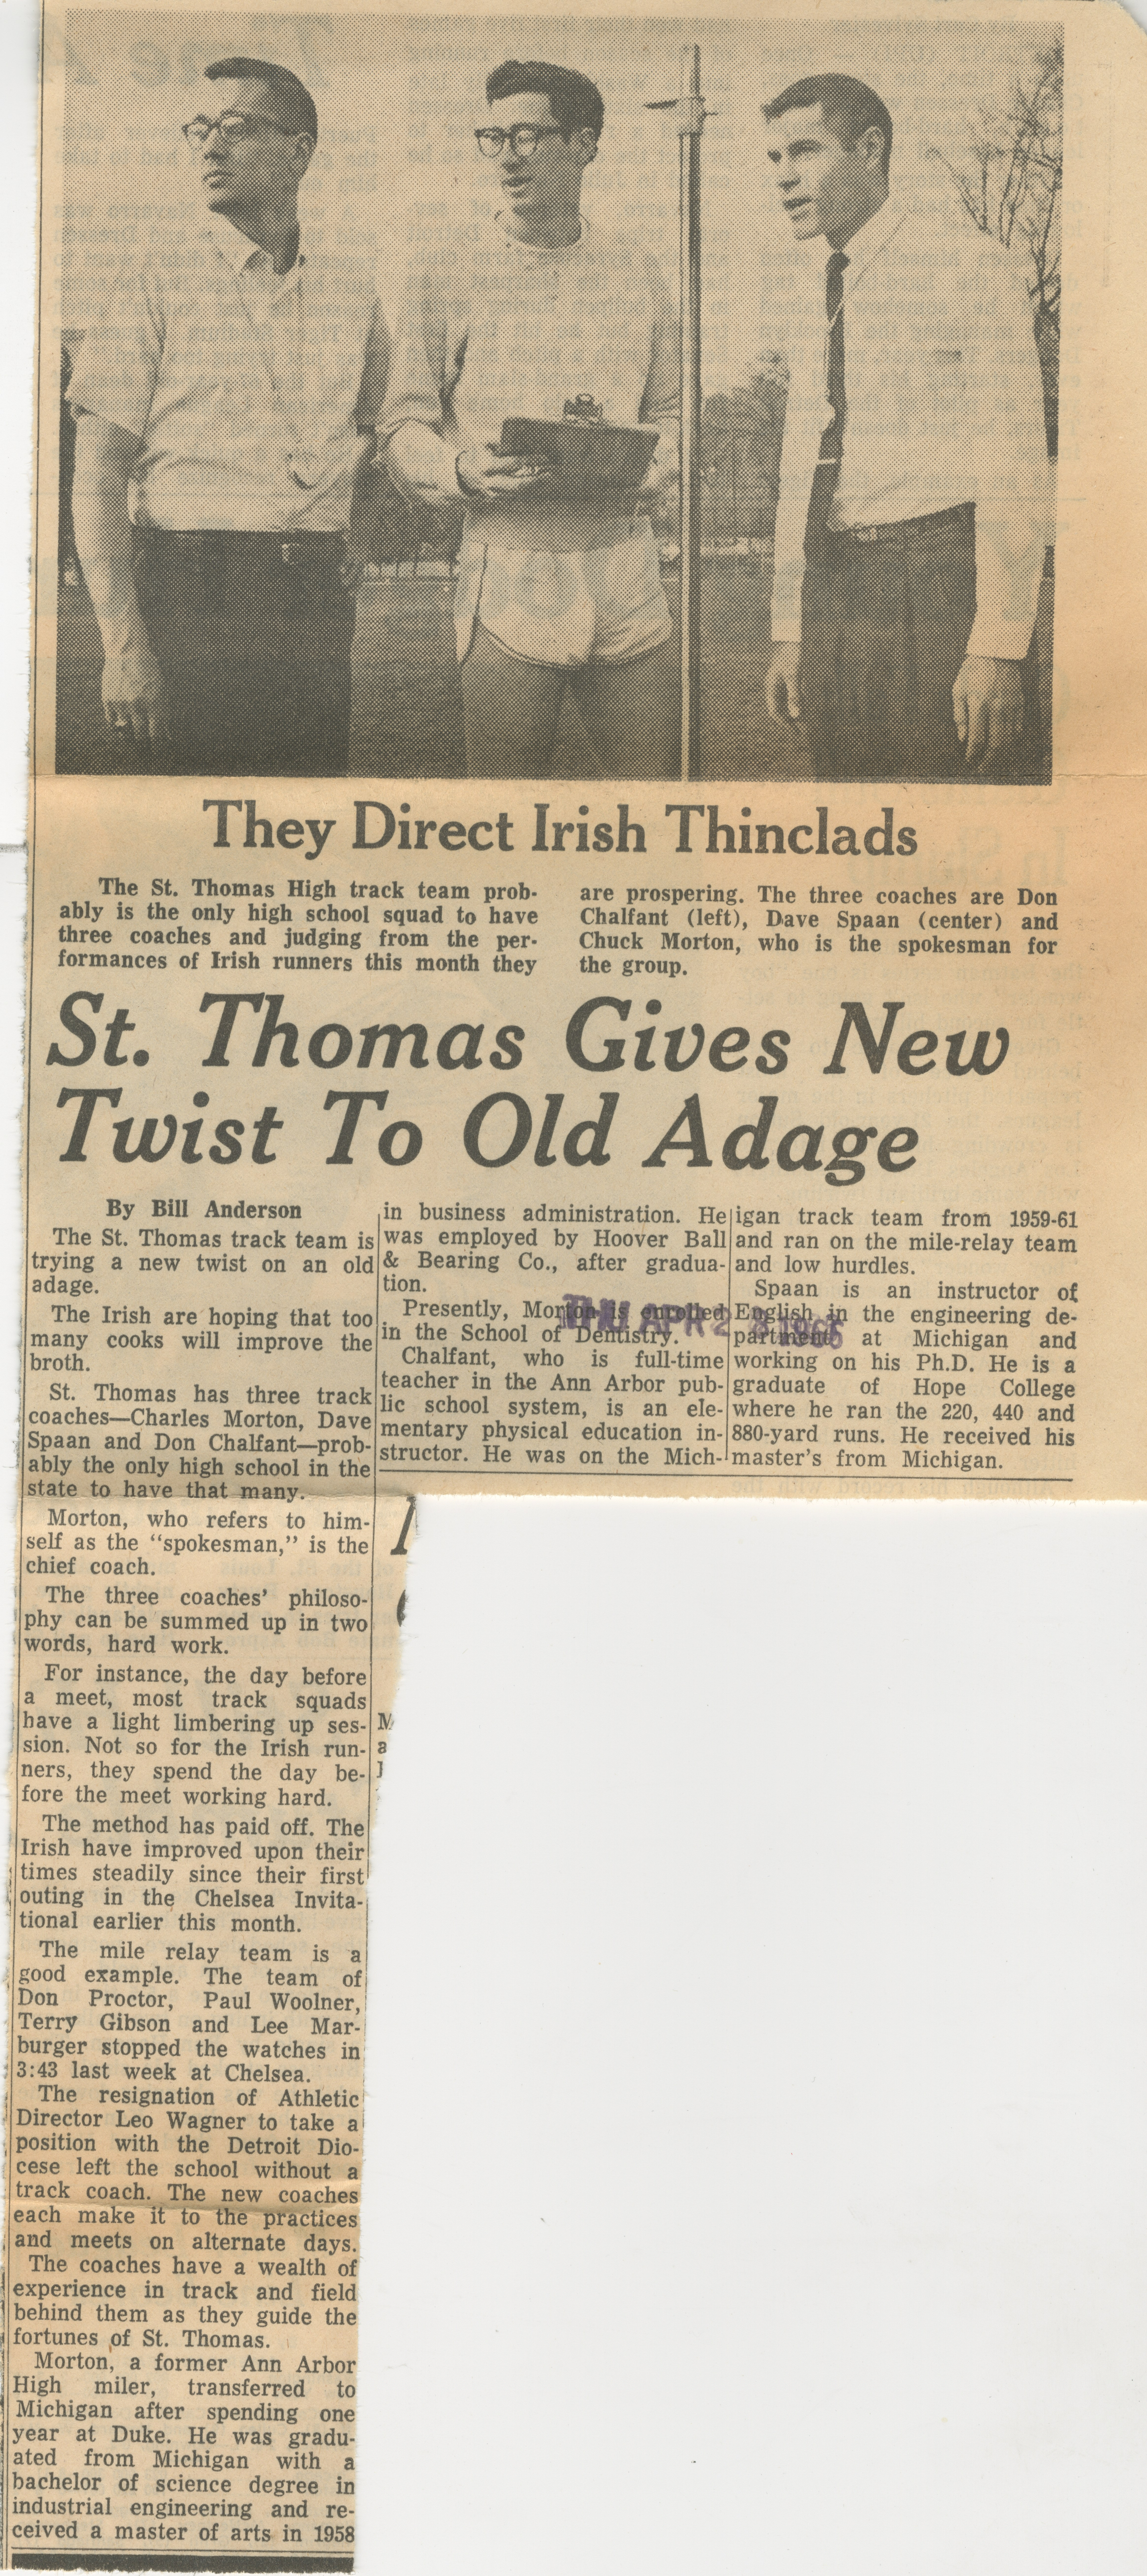 St.Thomas Gives New Twist To Old Adage image